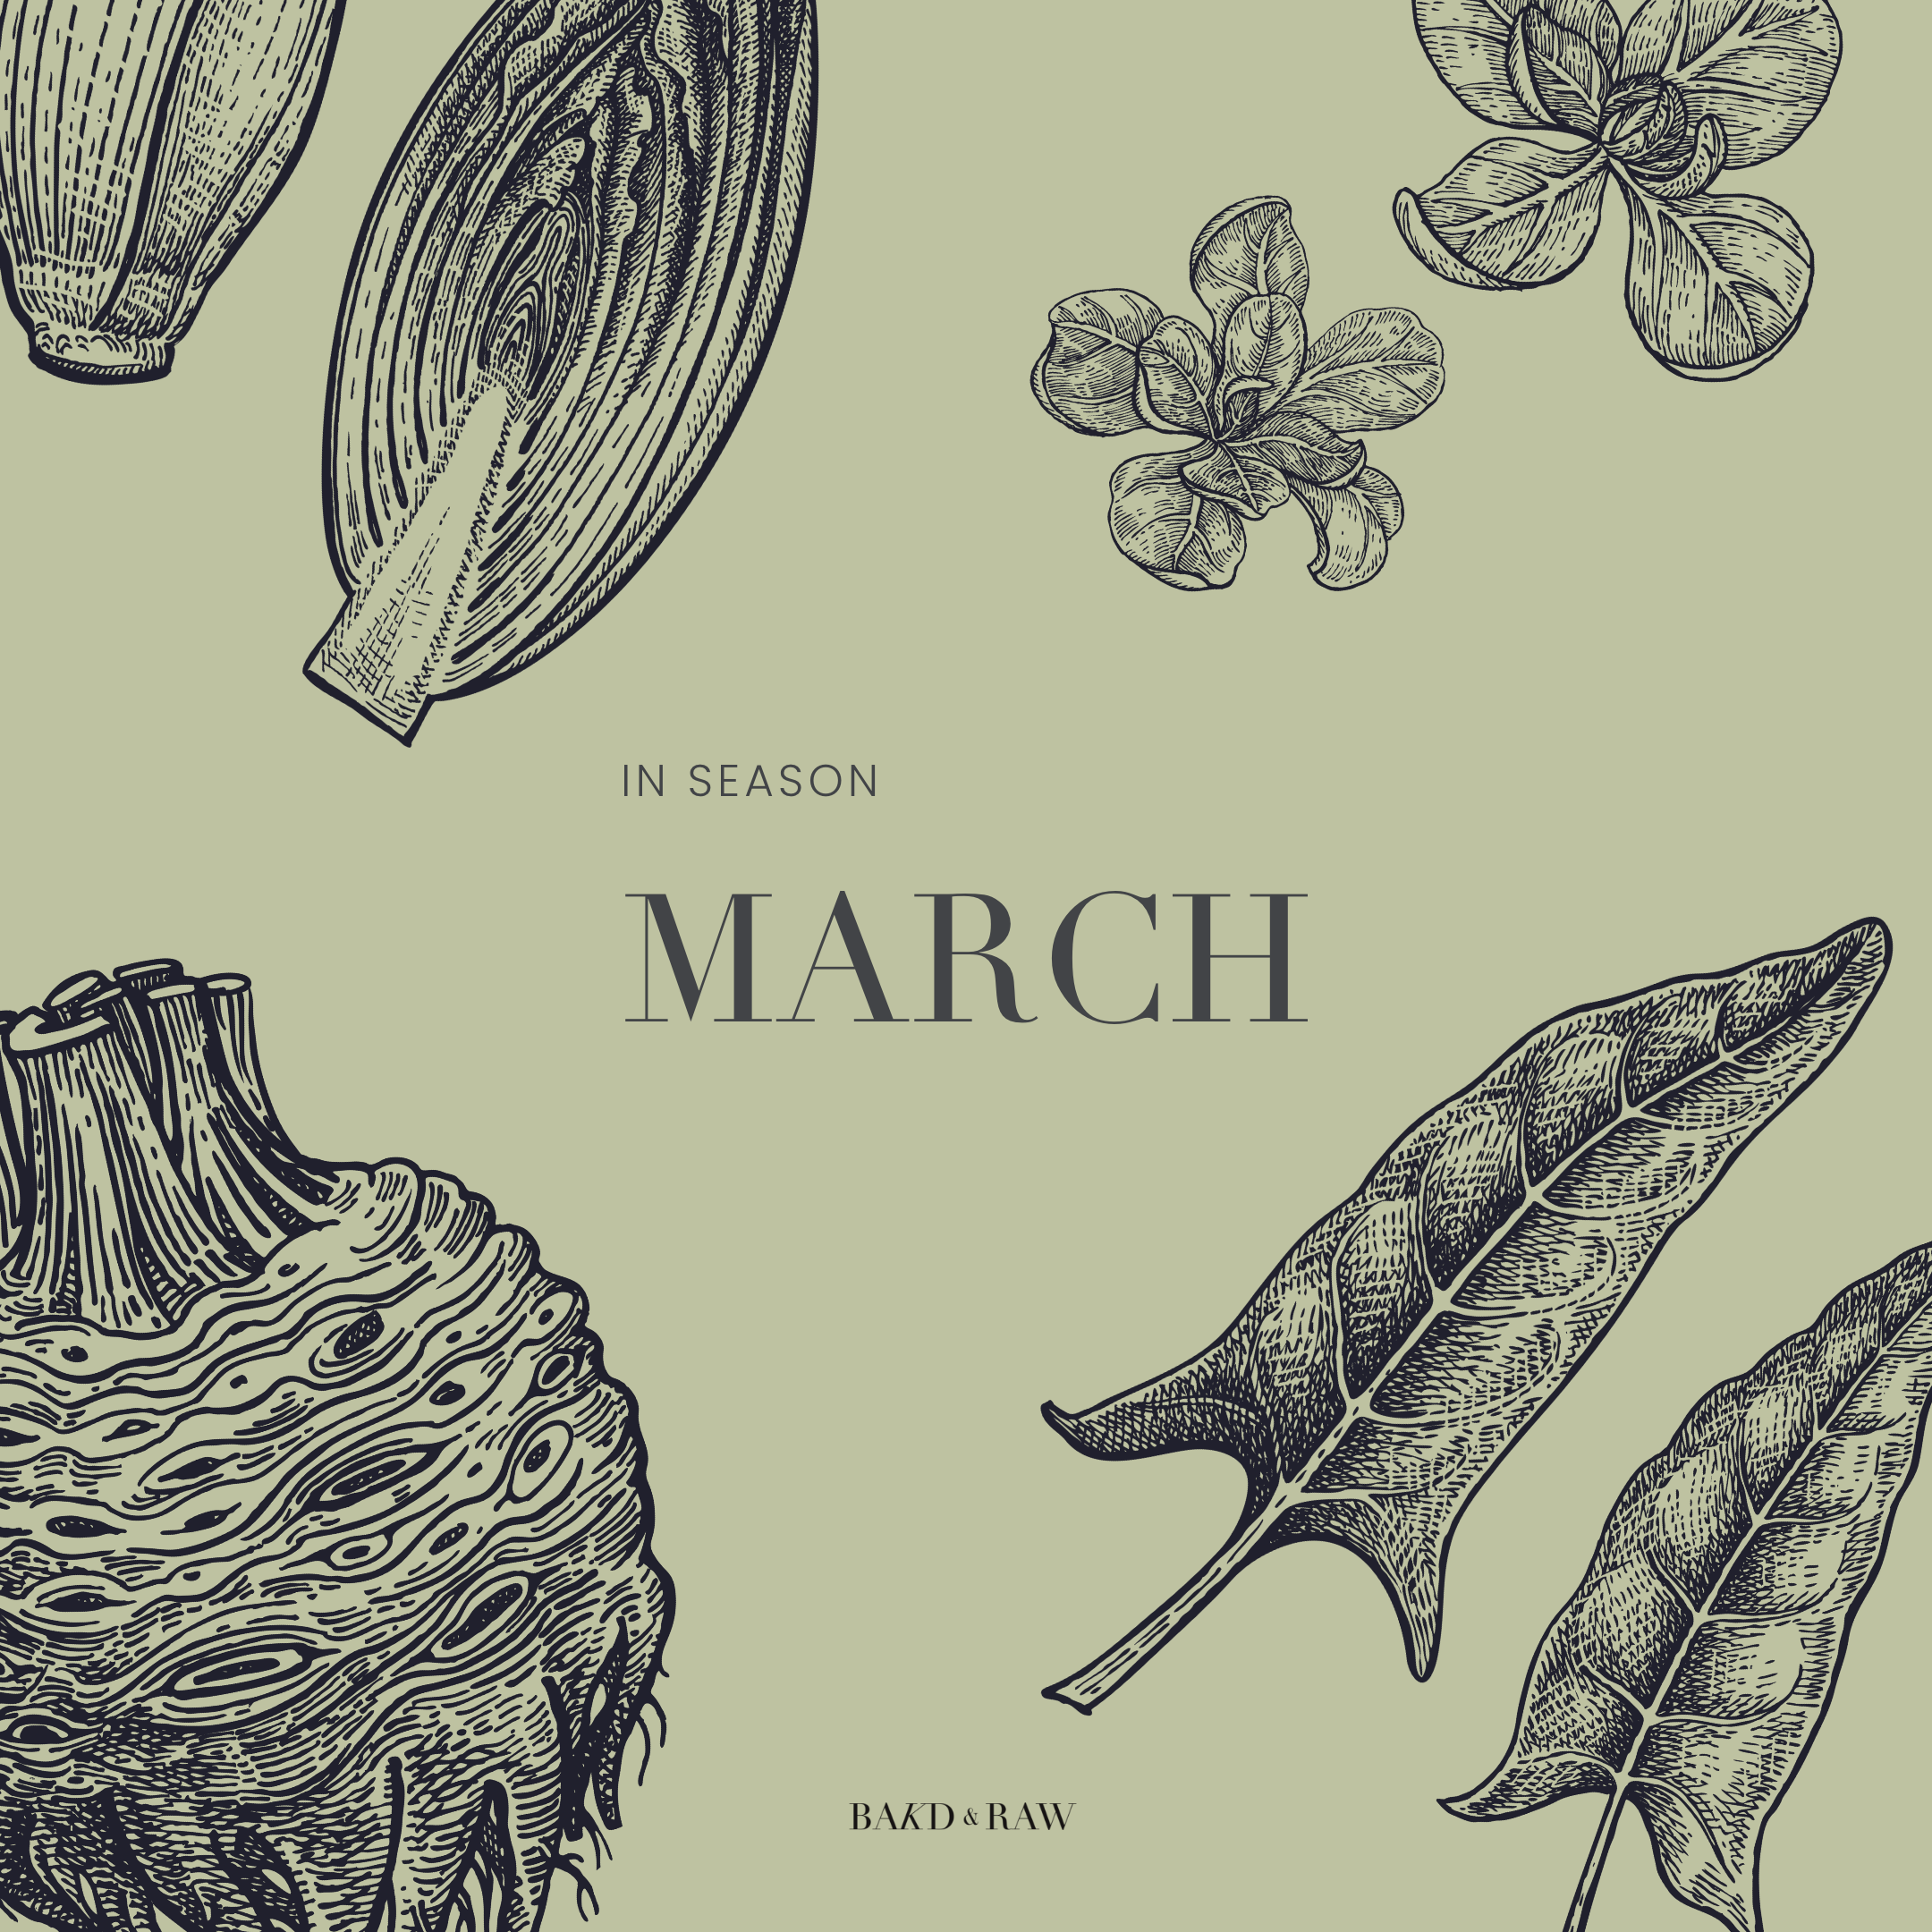 Seasonal Produce March Germany by Karolin Baitinger - Bakd&Raw